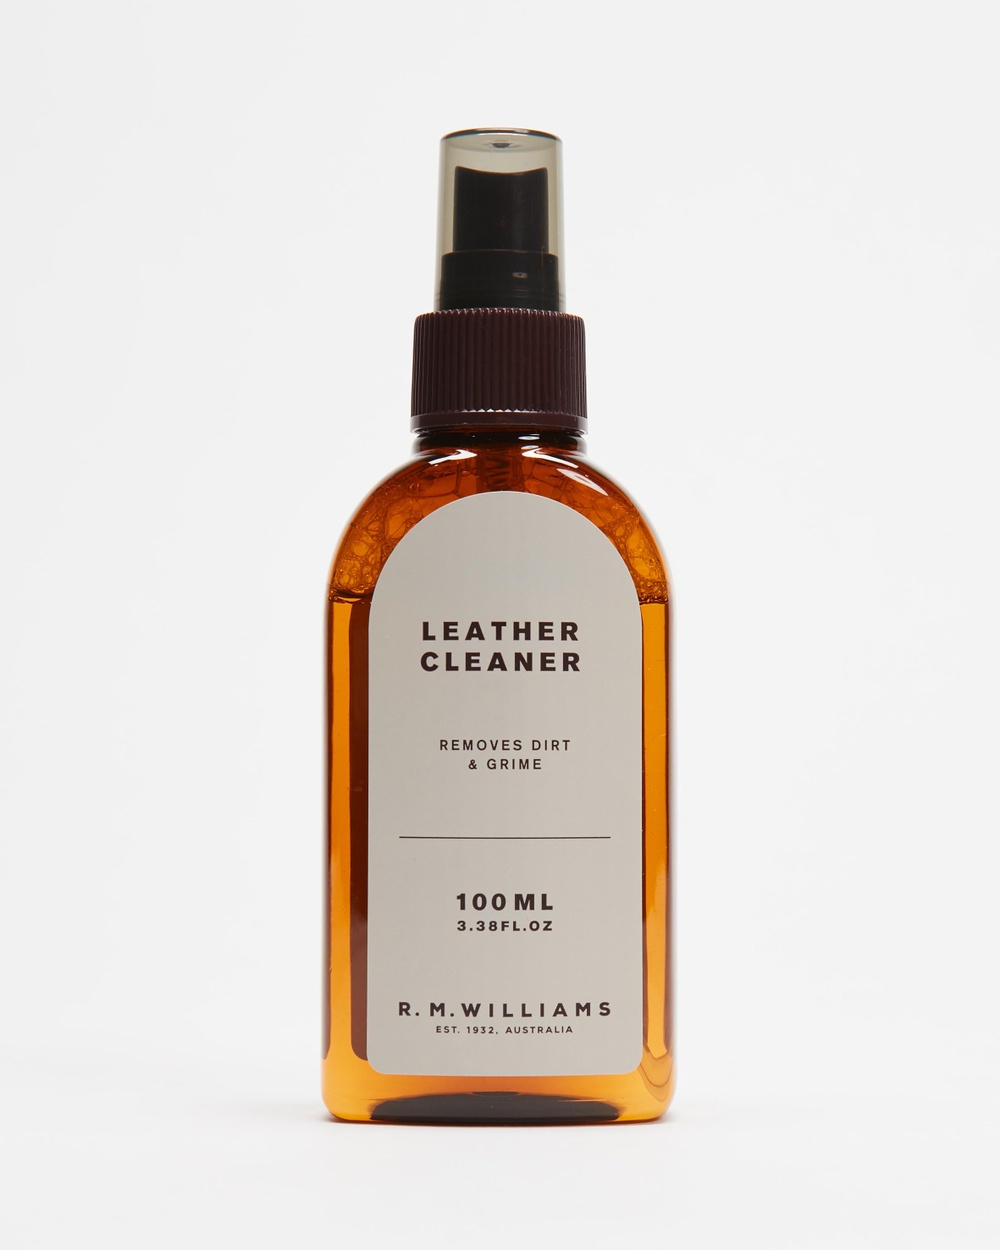 R.M.Williams Leather Cleaner Accessories No Colour